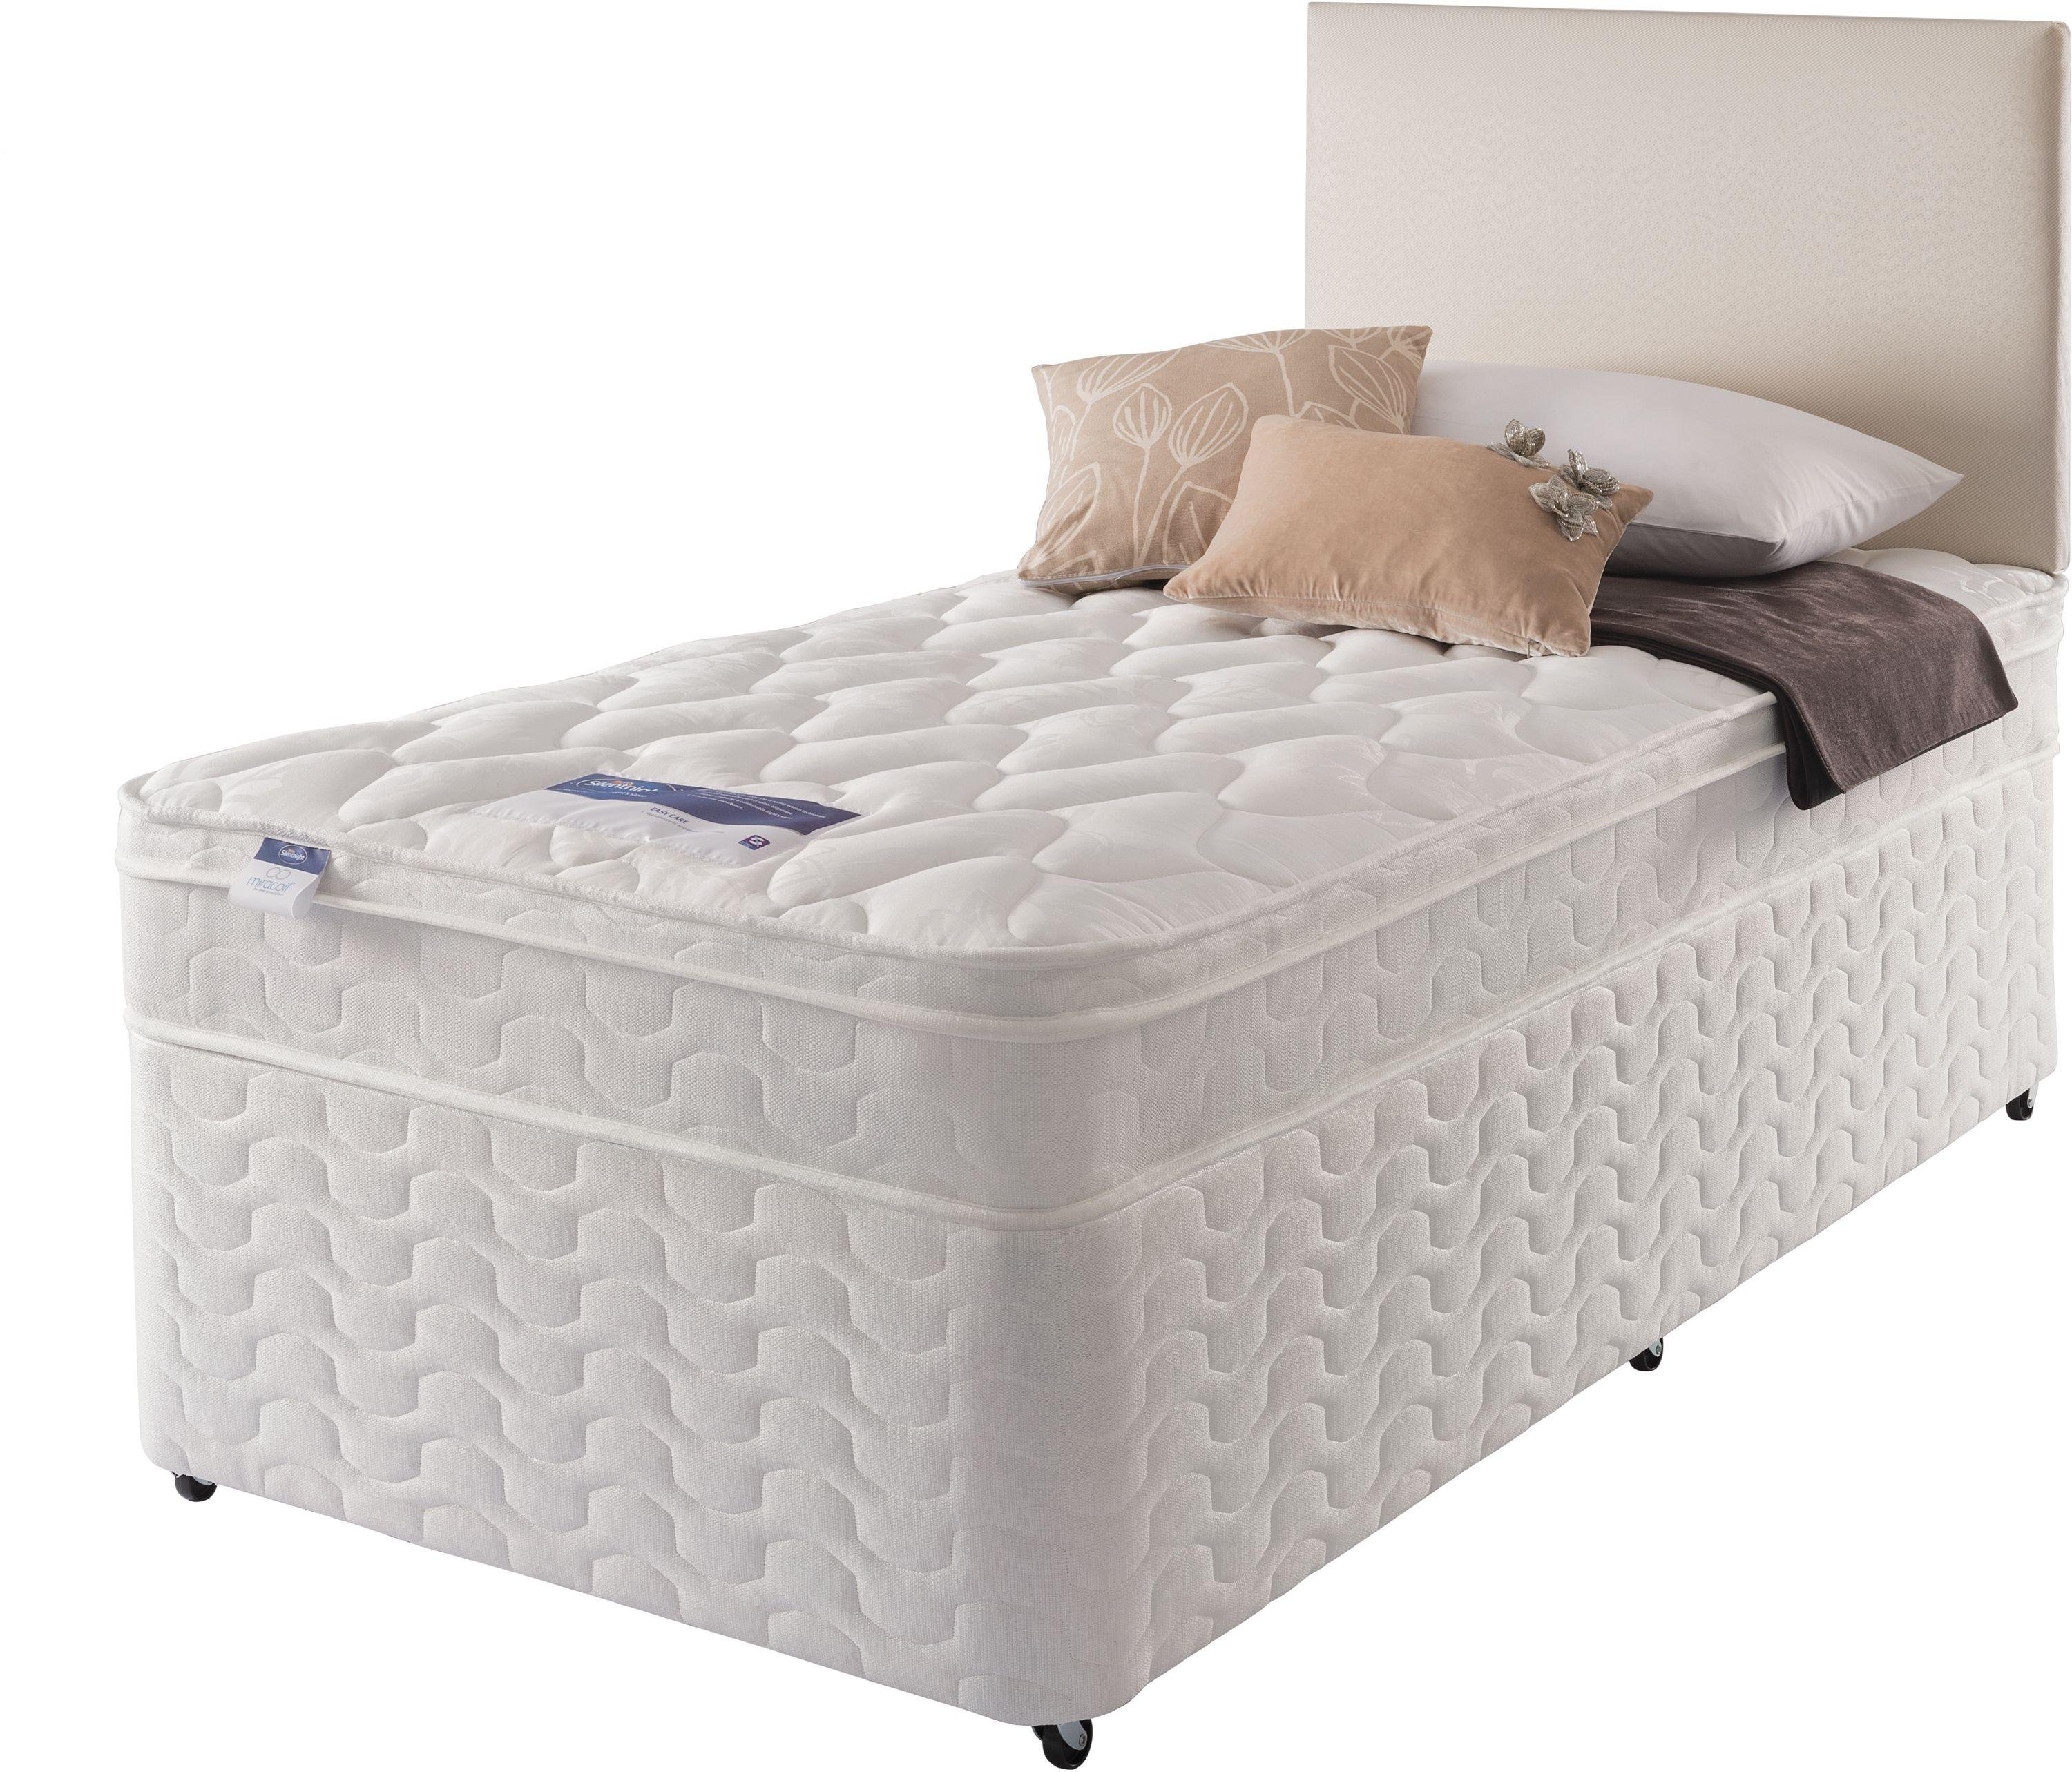 Silentnight Auckland Luxury Single Divan Bed